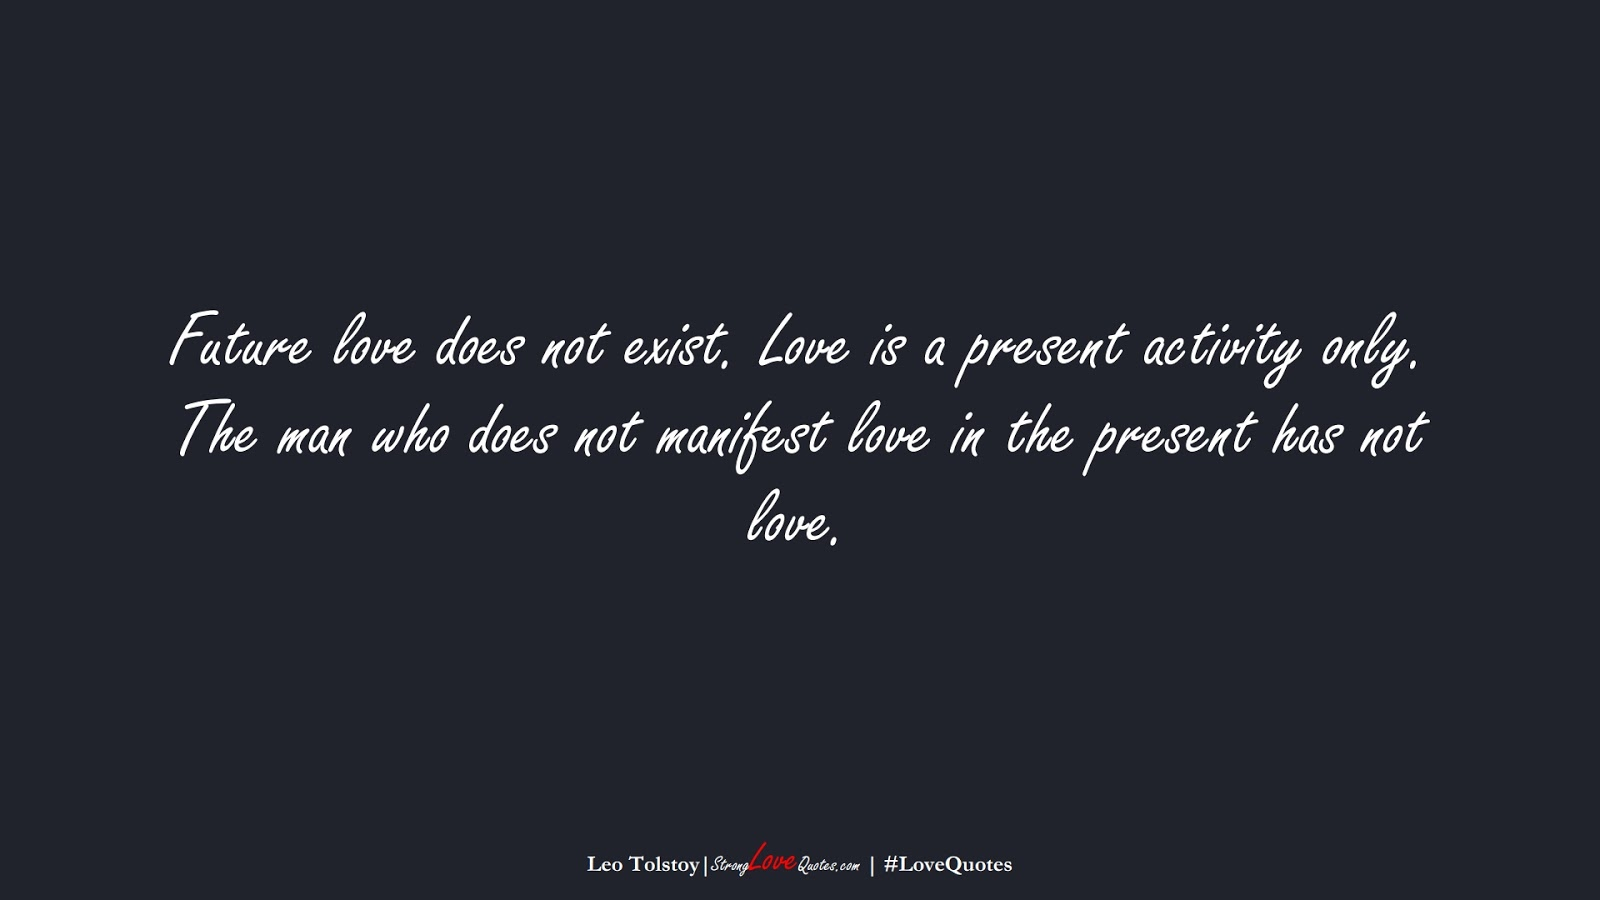 Future love does not exist. Love is a present activity only. The man who does not manifest love in the present has not love. (Leo Tolstoy);  #LoveQuotes